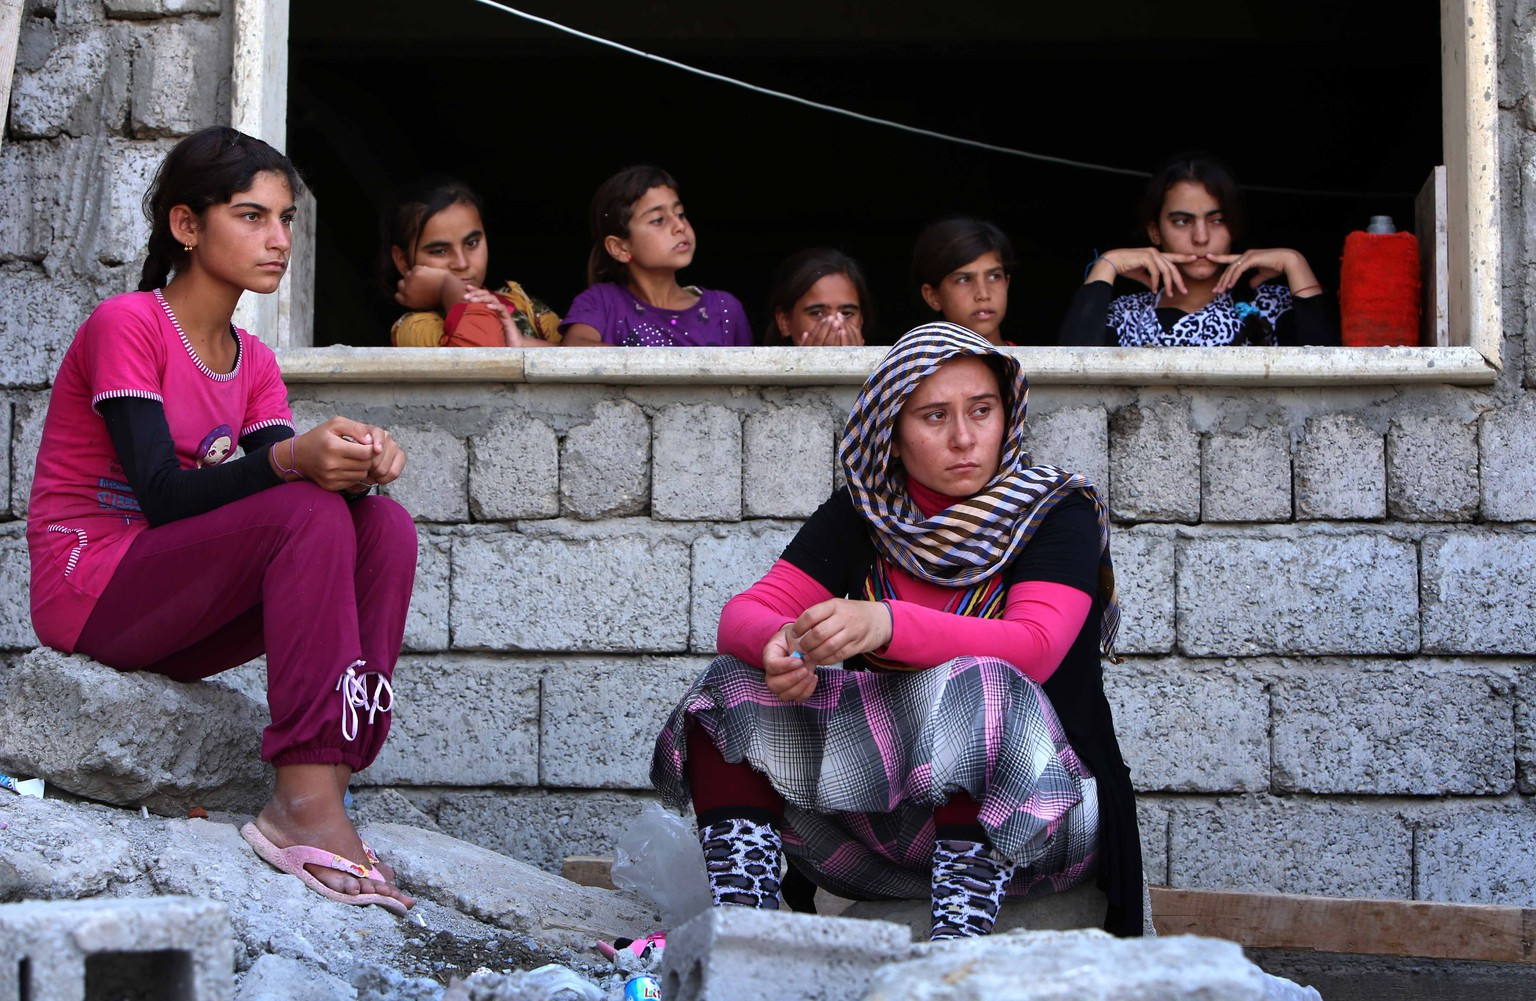 Iraqi Yazidi women who fled the violence in the northern Iraqi town of Sinjar, sit at a school where they are taking shelter in the Kurdish city of Dohuk in Iraq's autonomous Kurdistan region, on August 5, 2014. Islamic State (IS) Sunni jihadists ousted the Peshmerga troops of Iraq's Kurdish government from the northern Iraqi town of Sinjar, forcing thousands of people from their homes. The Yazidis, are a small community that follows a 4,000-year-old faith and have been repeatedly targeted by jihadists who call them